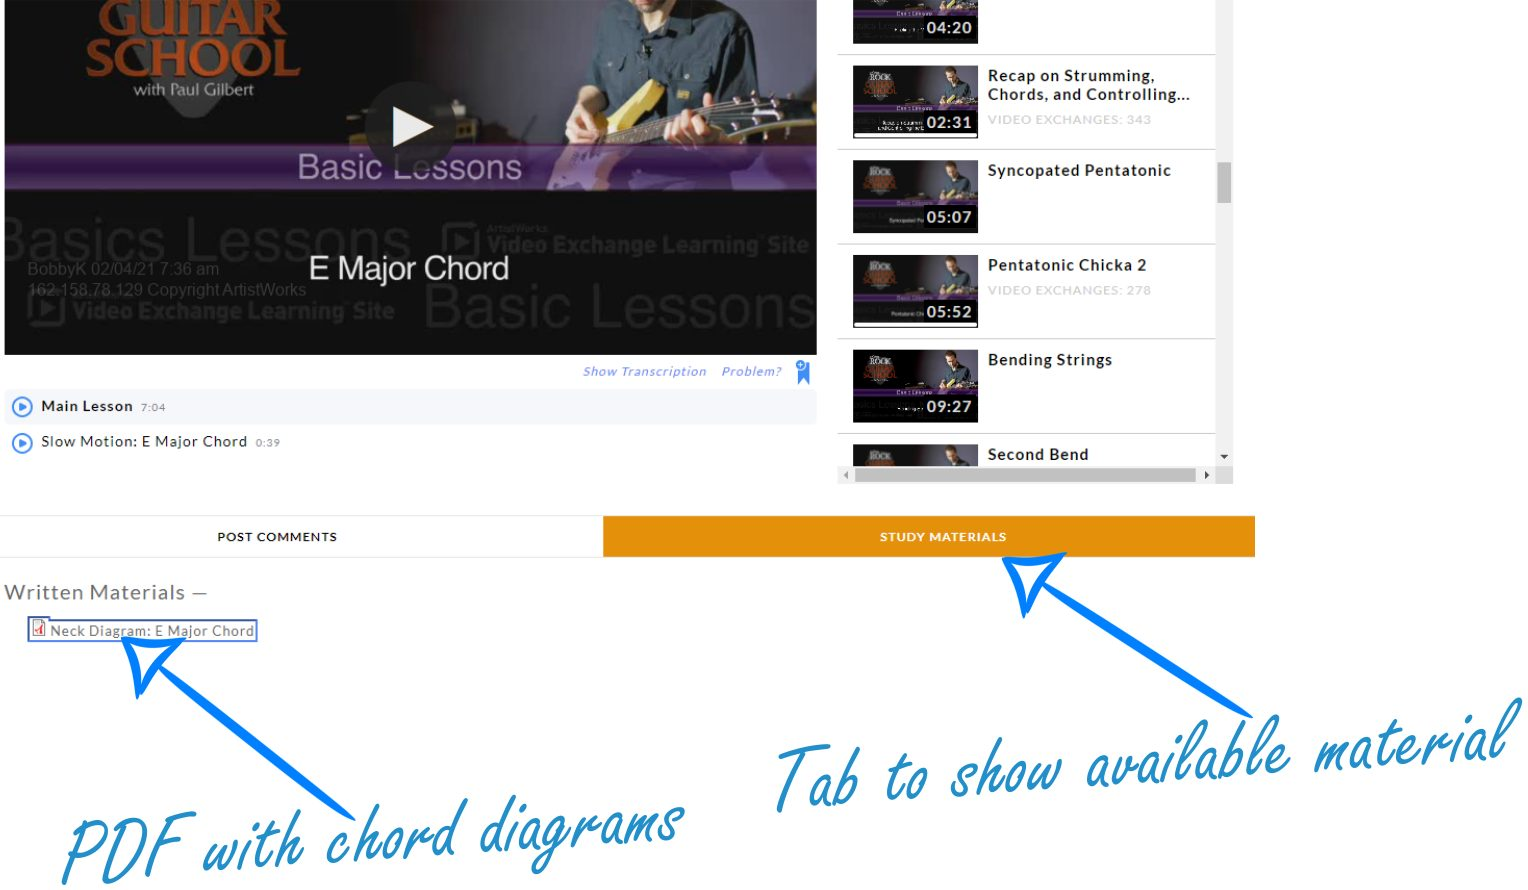 Supplemental Content in ArtistWorks Guitar Lesson Noted